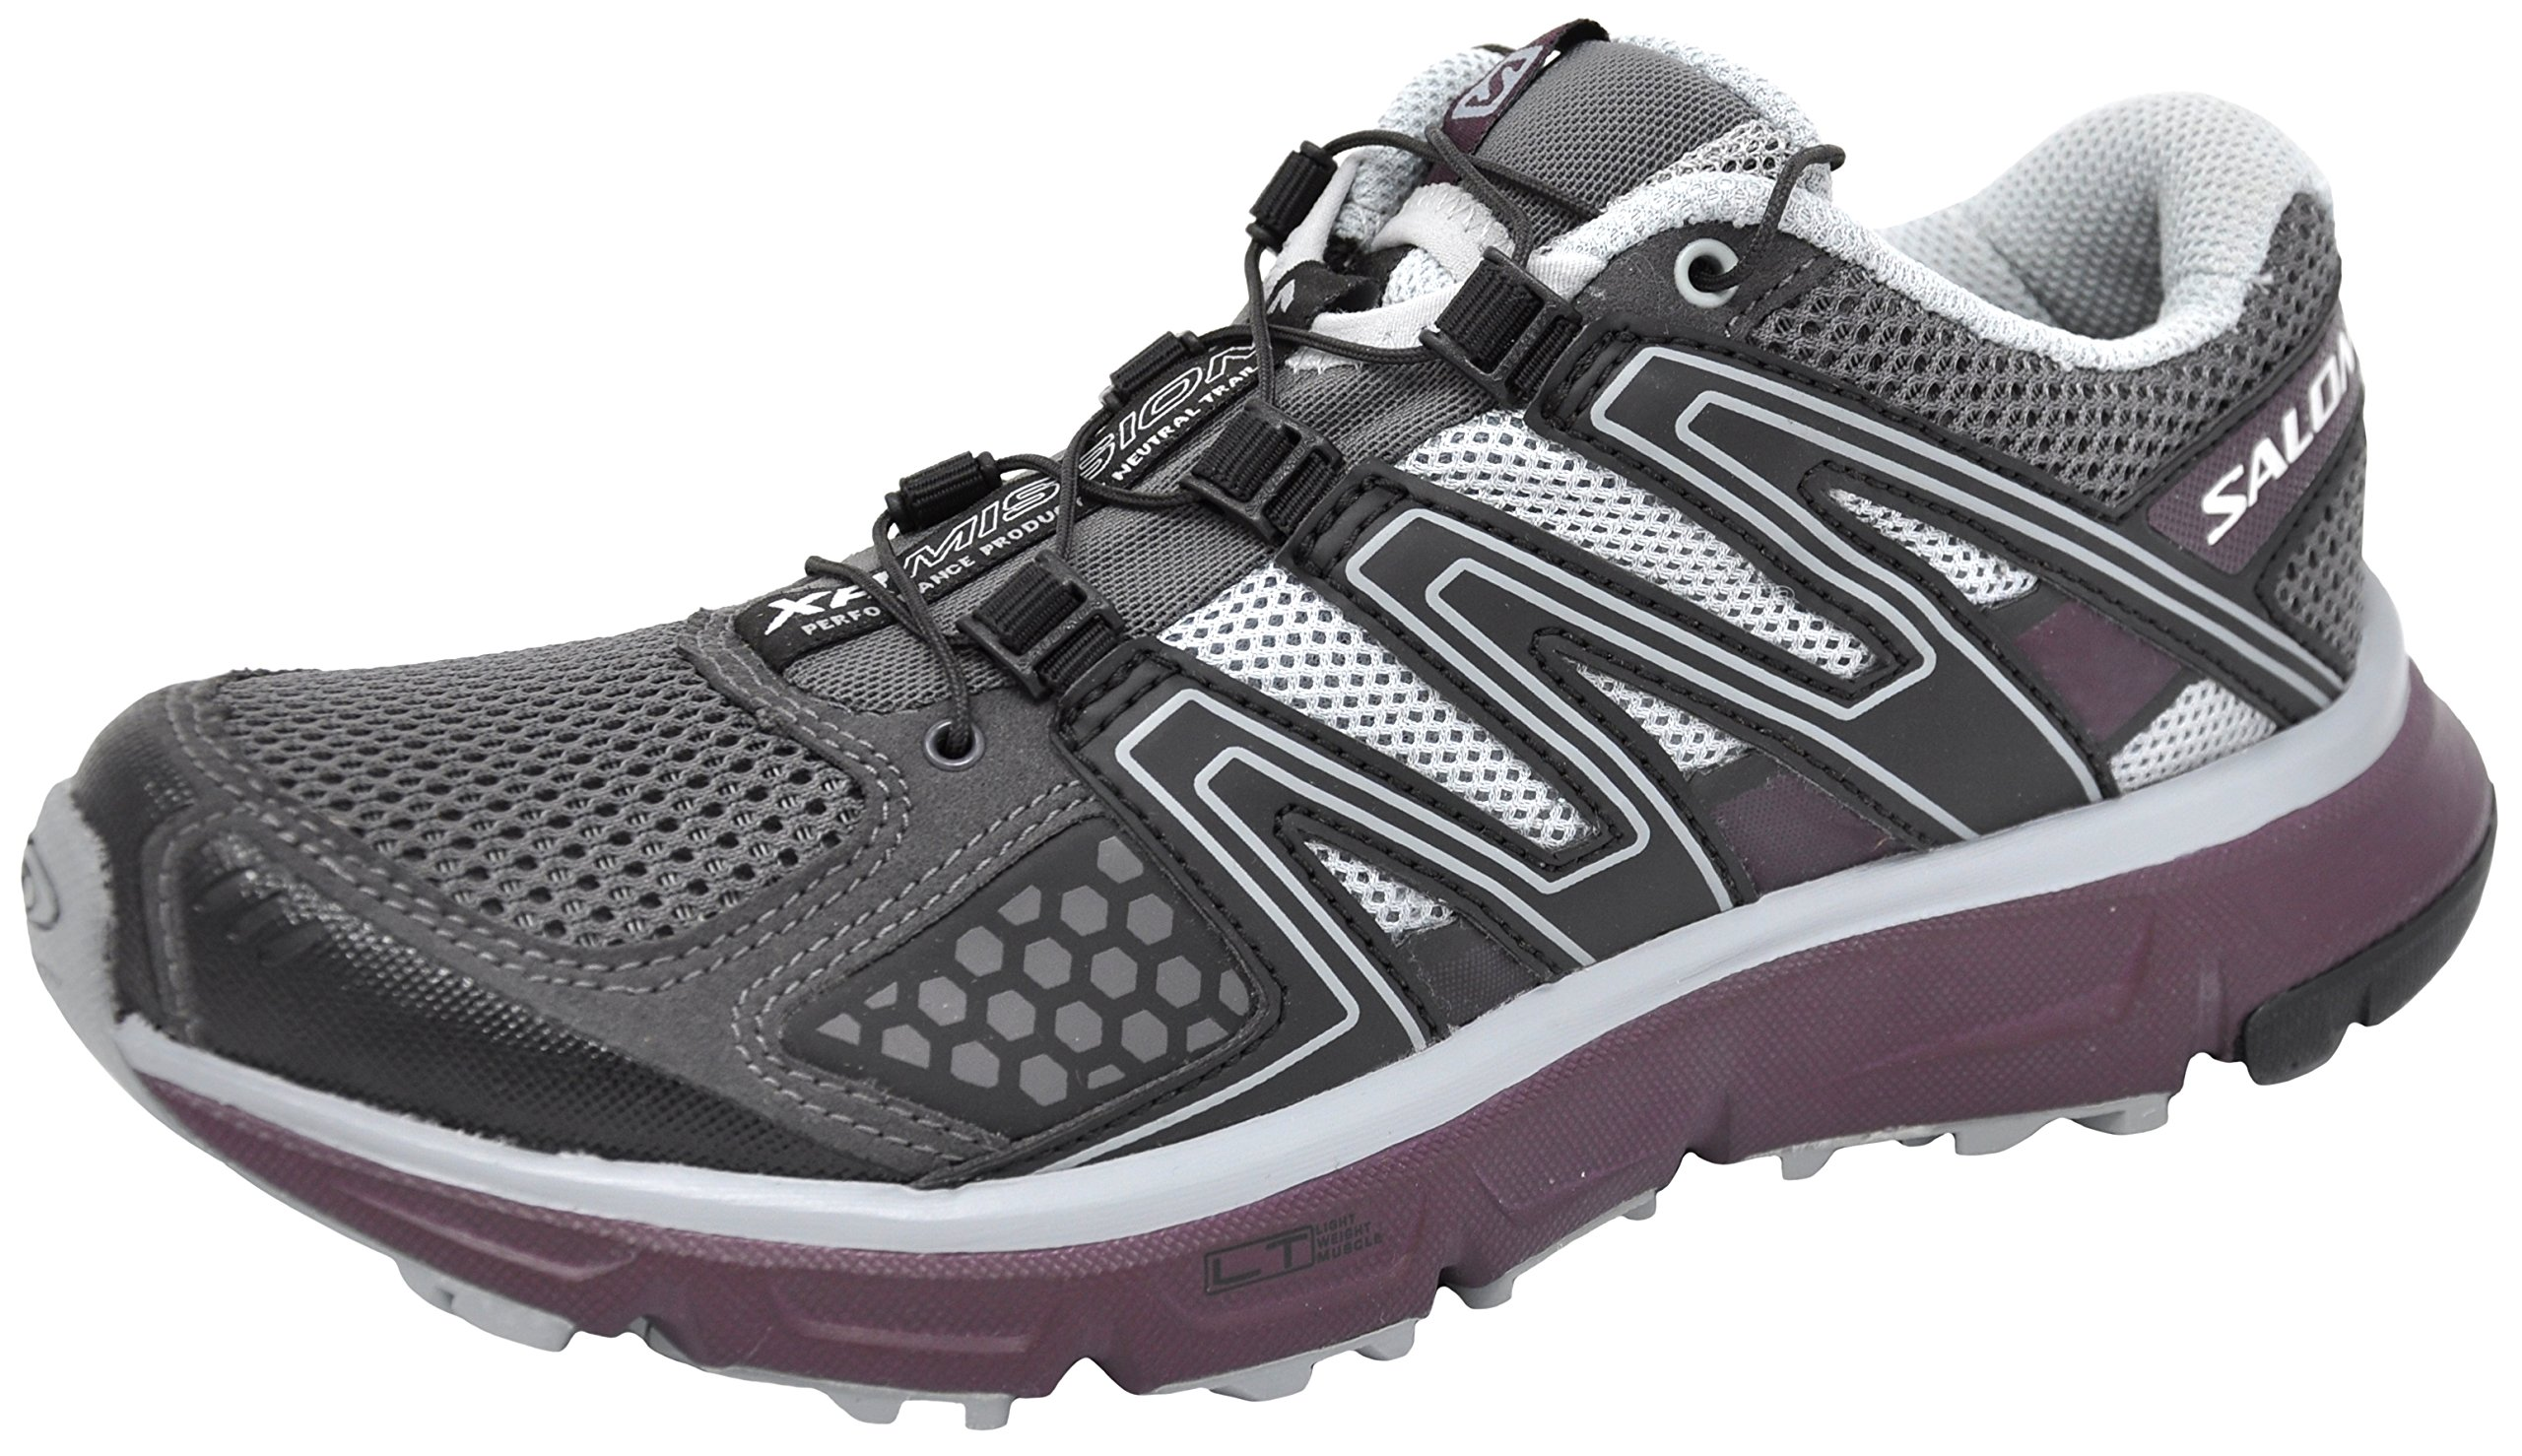 SALOMON Women's XR Mission Trail Running Shoe (9 B(M) US, Magnent/Black/Purple) by SALOMON